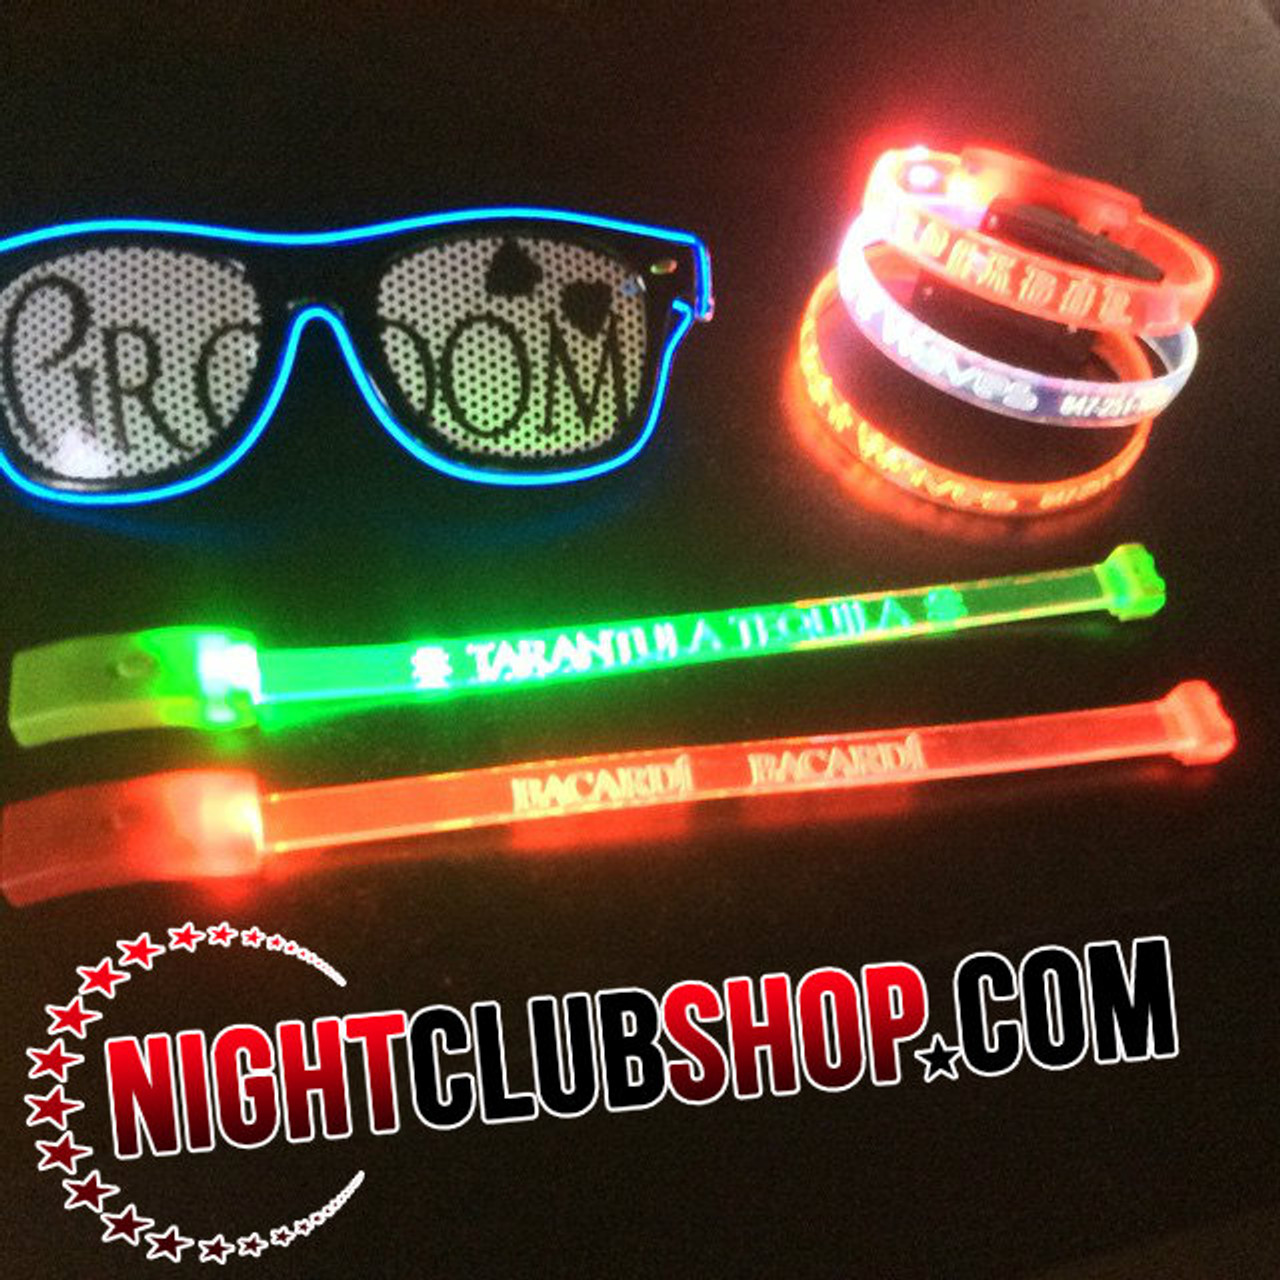 LED, bride, groom, Light up, Light, Iluminated, Glow, Wristband, wrist Band, Bracelet, Band, Personalized, Custom, LED Wristband, VIP, Logo, Name, Art